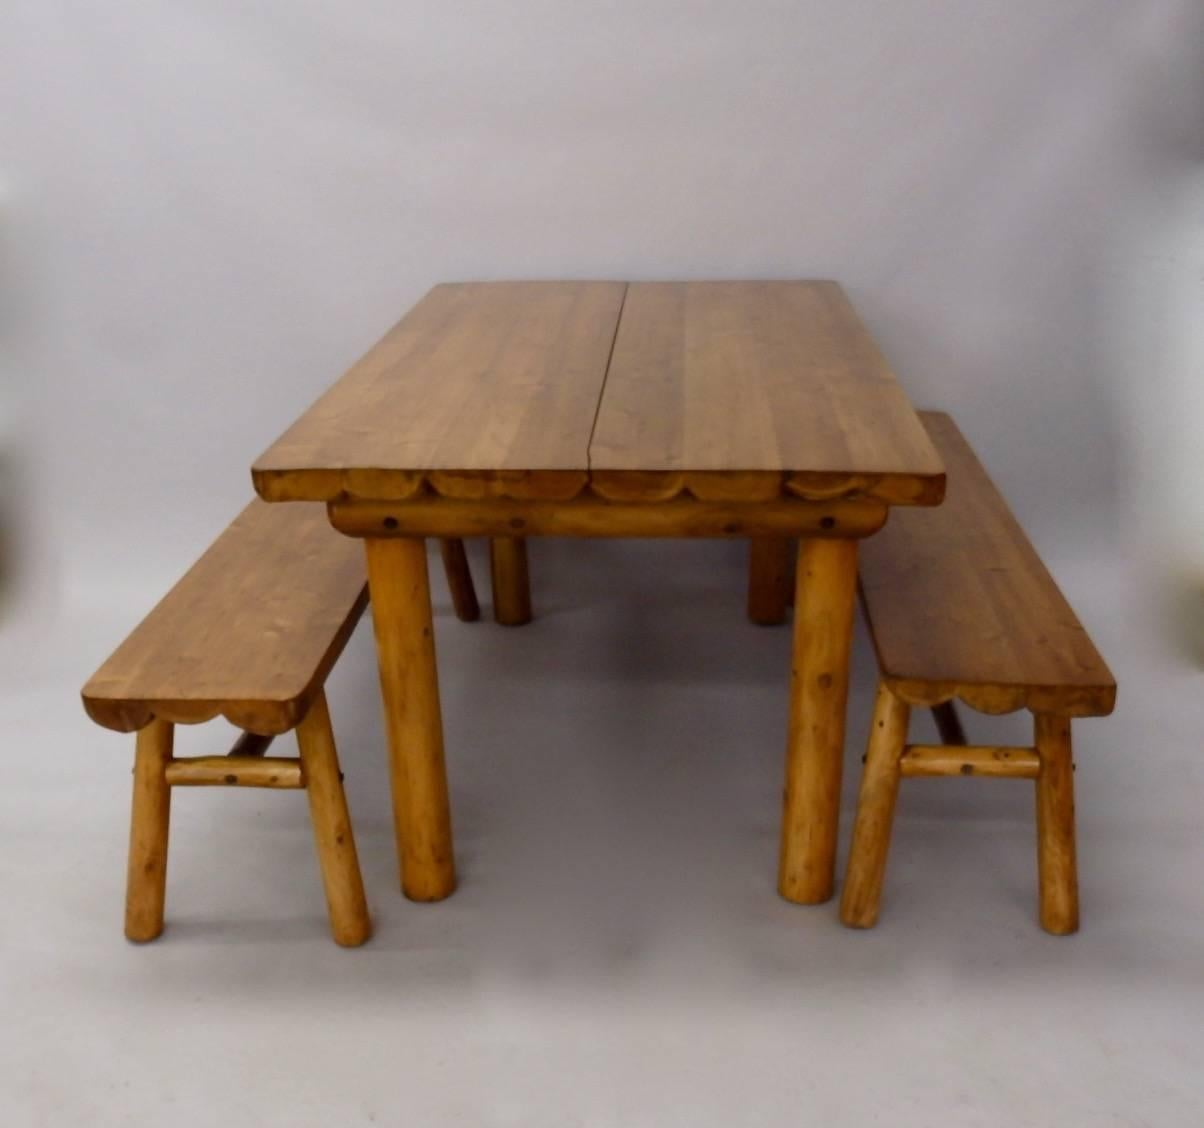 American Knotty Pine Rustic Adirondack Cabin , Ranch Or Cottage Dining Table  With Benches For Sale